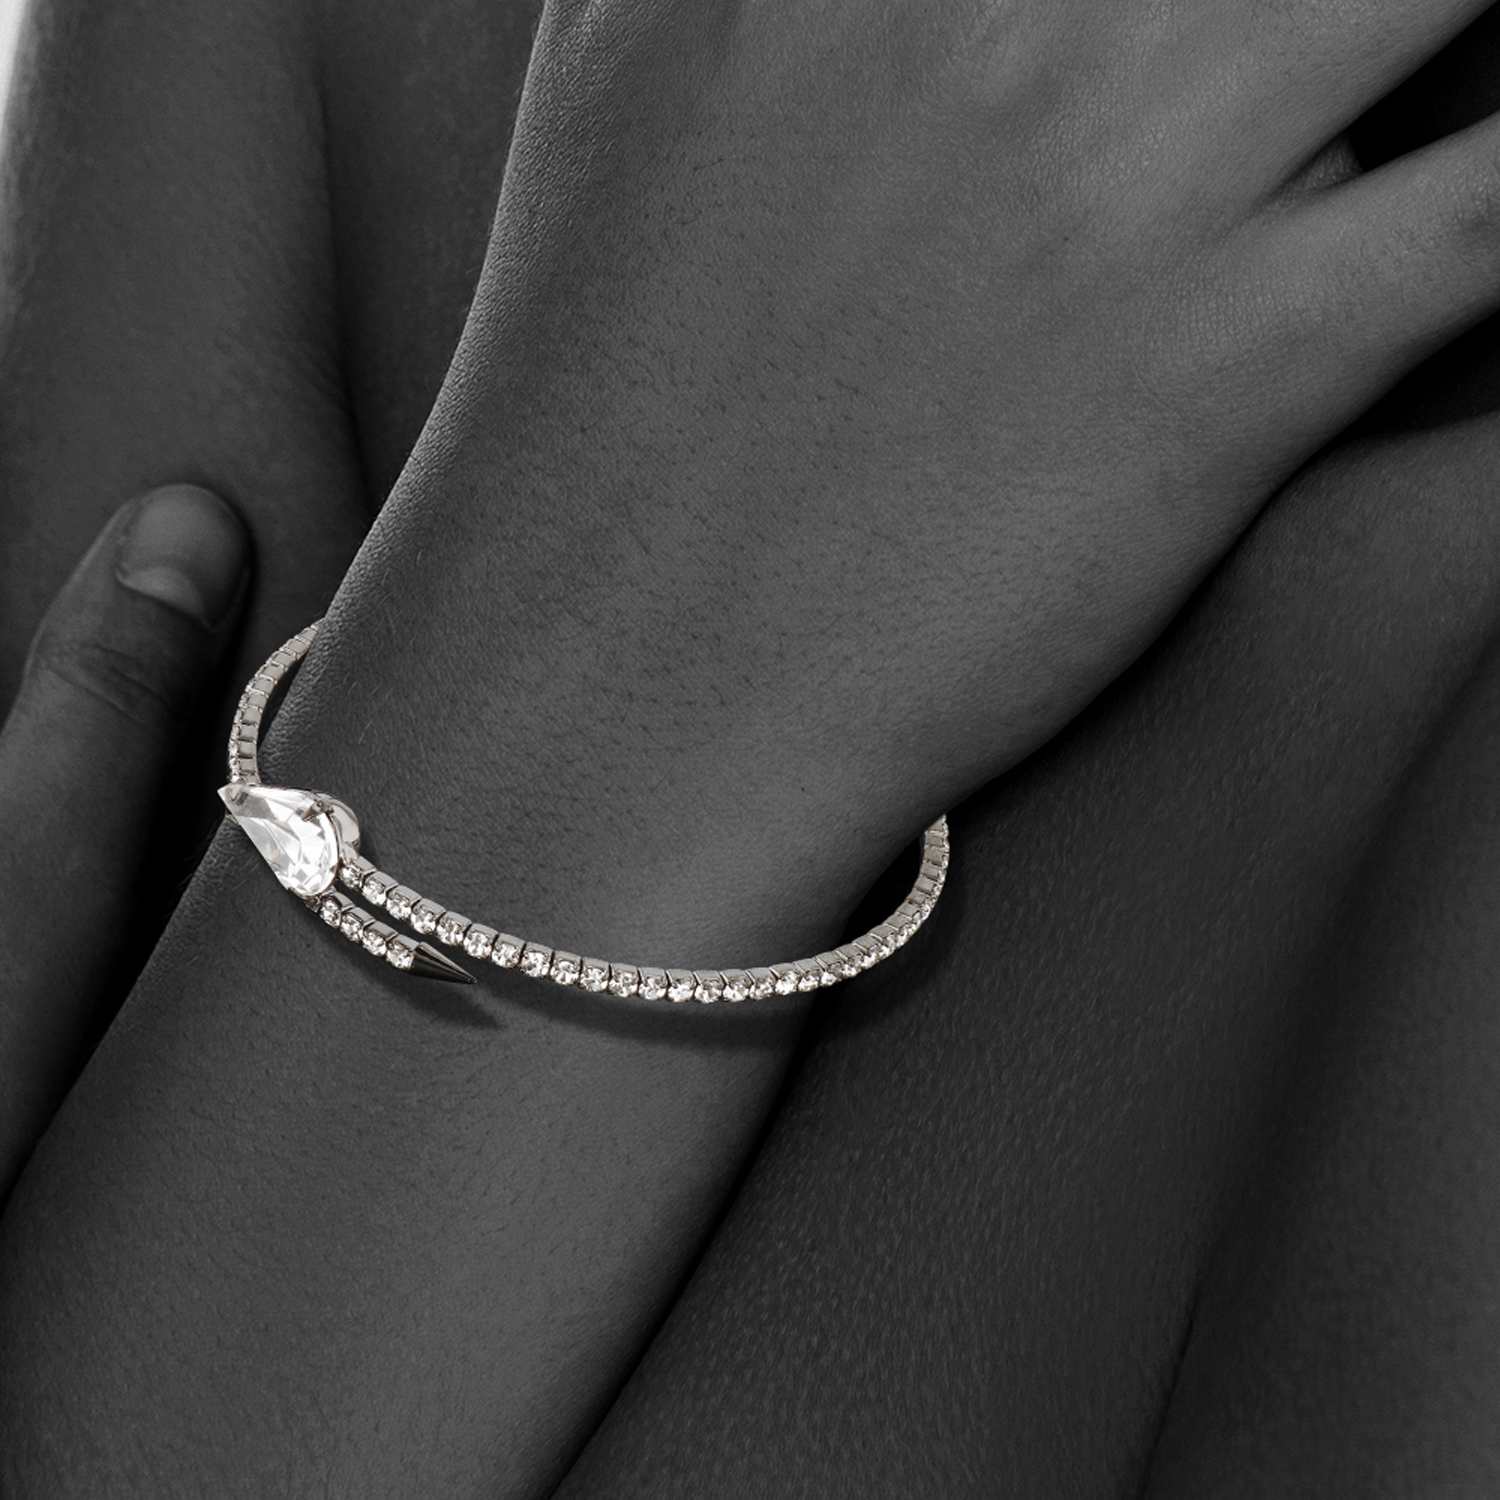 Womens-Ladies-Fashion-Accessories-Jewelry-Single-Crystal-Spear-Bangle-Bracelet thumbnail 8